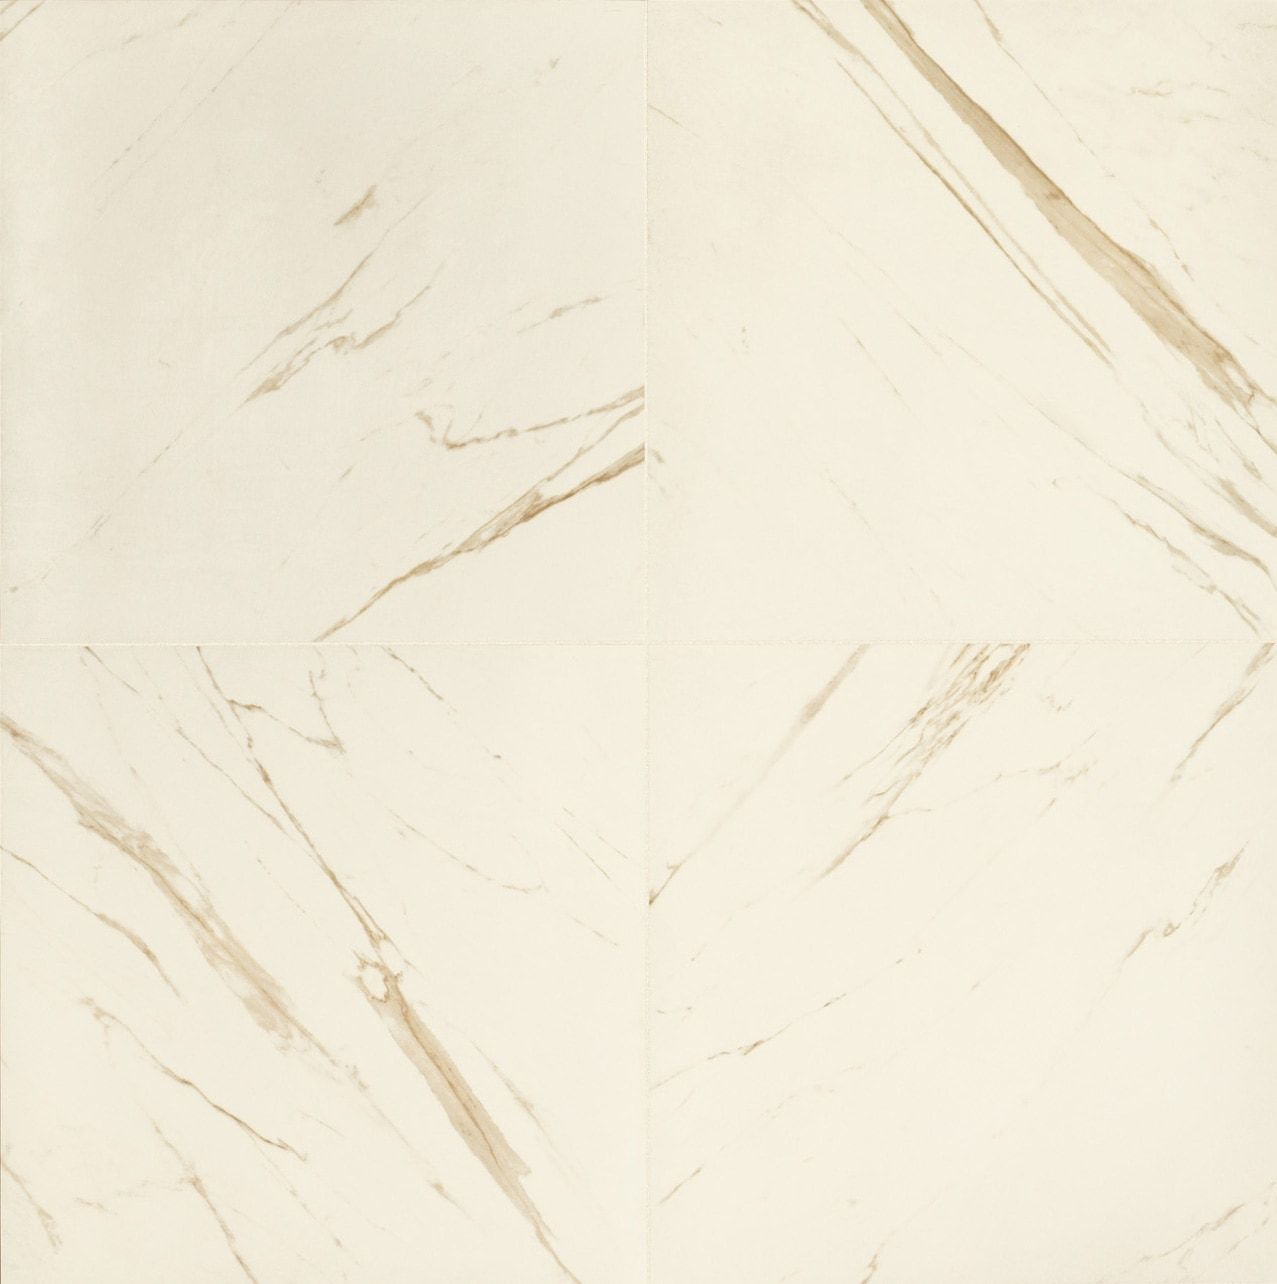 Versace Marble Bianco poliert 58-5x117-5 cm 02400610-